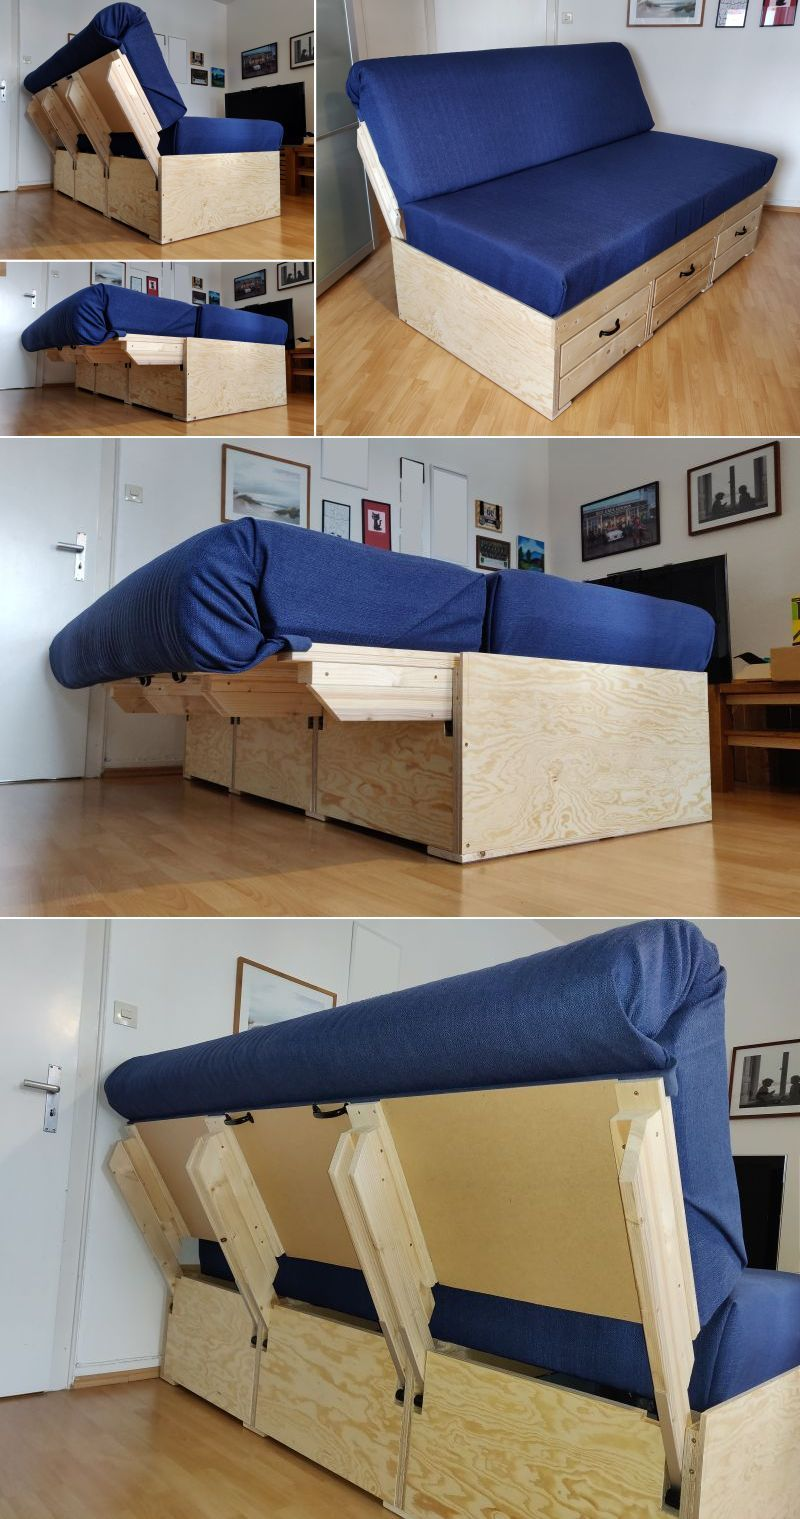 Diy Convertible Sofa Bed With Storage Diy Sofa Bed Sofa Bed With Storage Diy Sofa